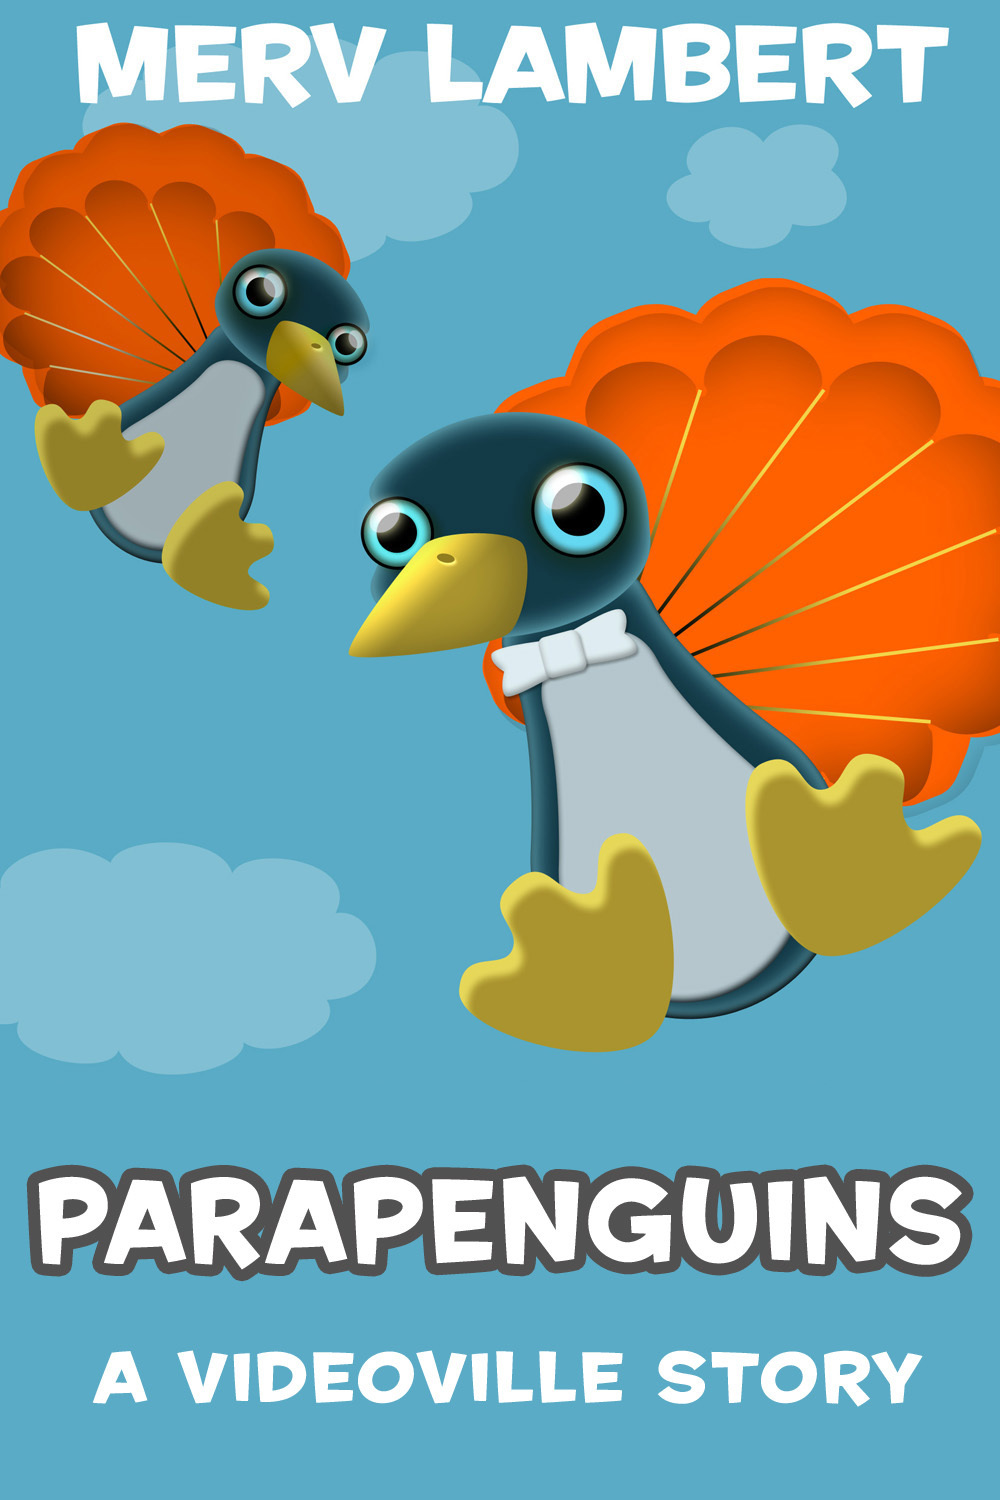 Lambert, Merv - Parapenguins - A Children's Short Story, ebook